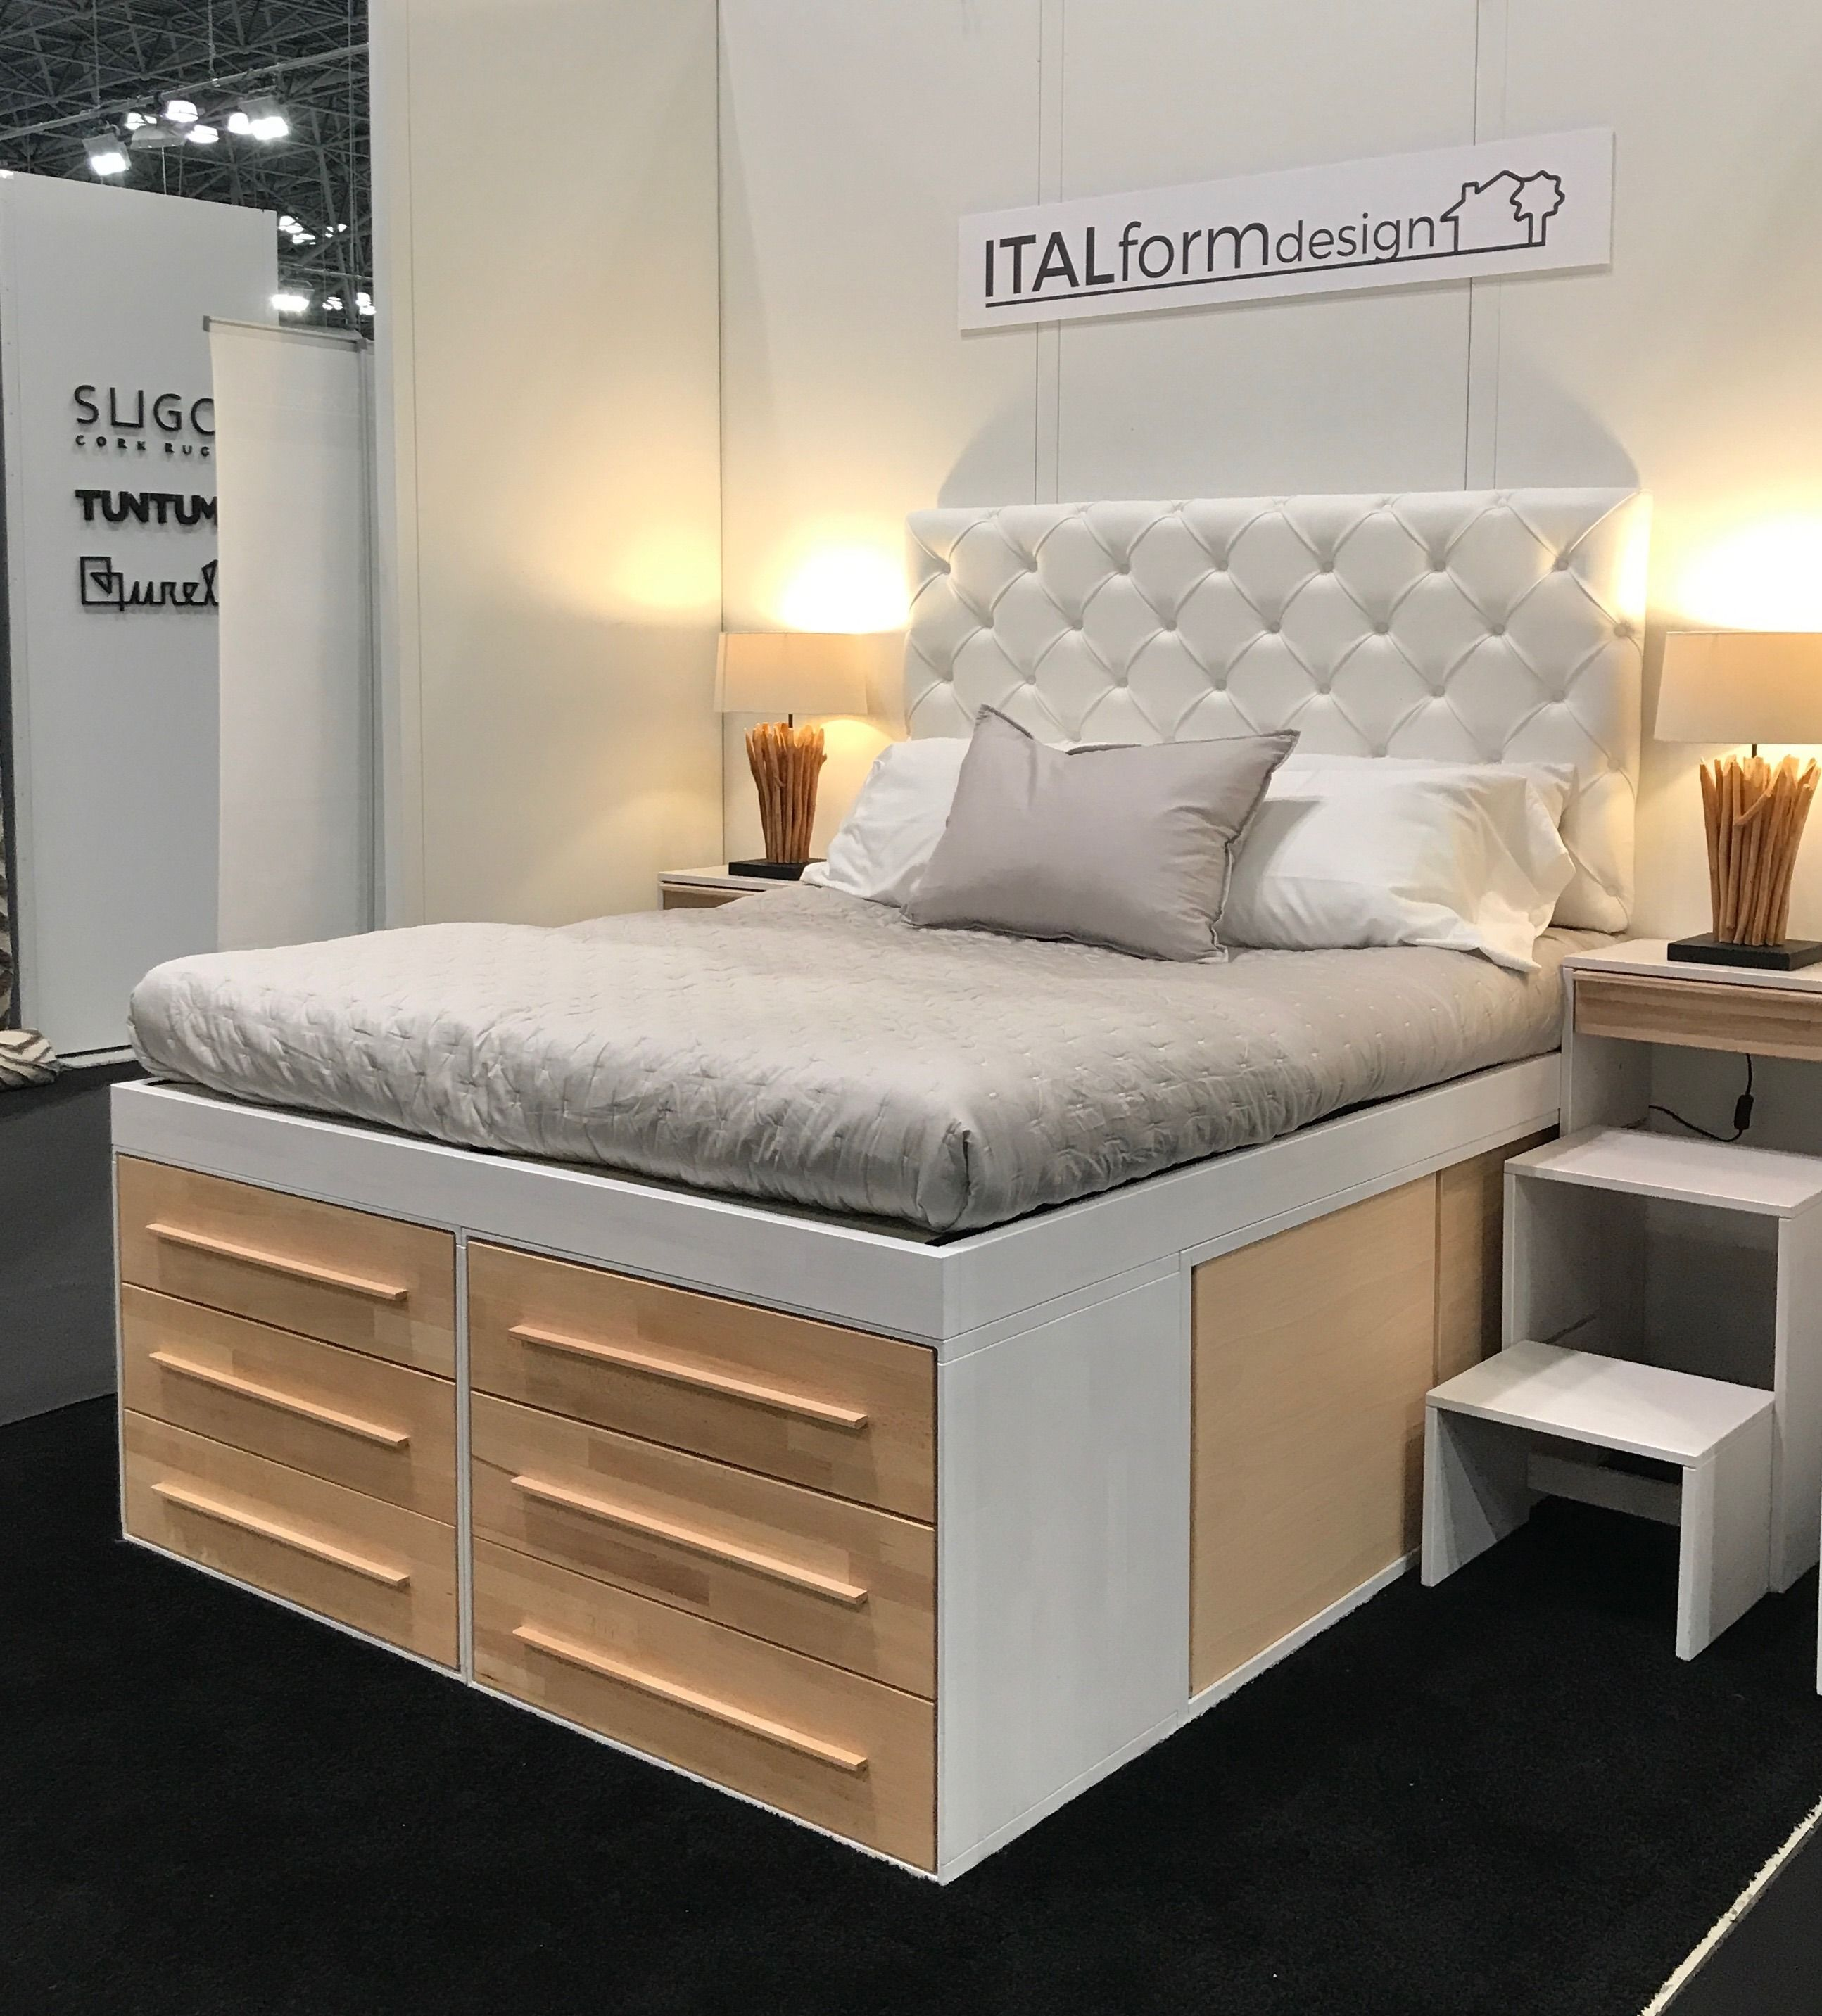 space saving beds designed to increase your storage on innovative ideas for useful beds with storages how to declutter your bedroom id=60480